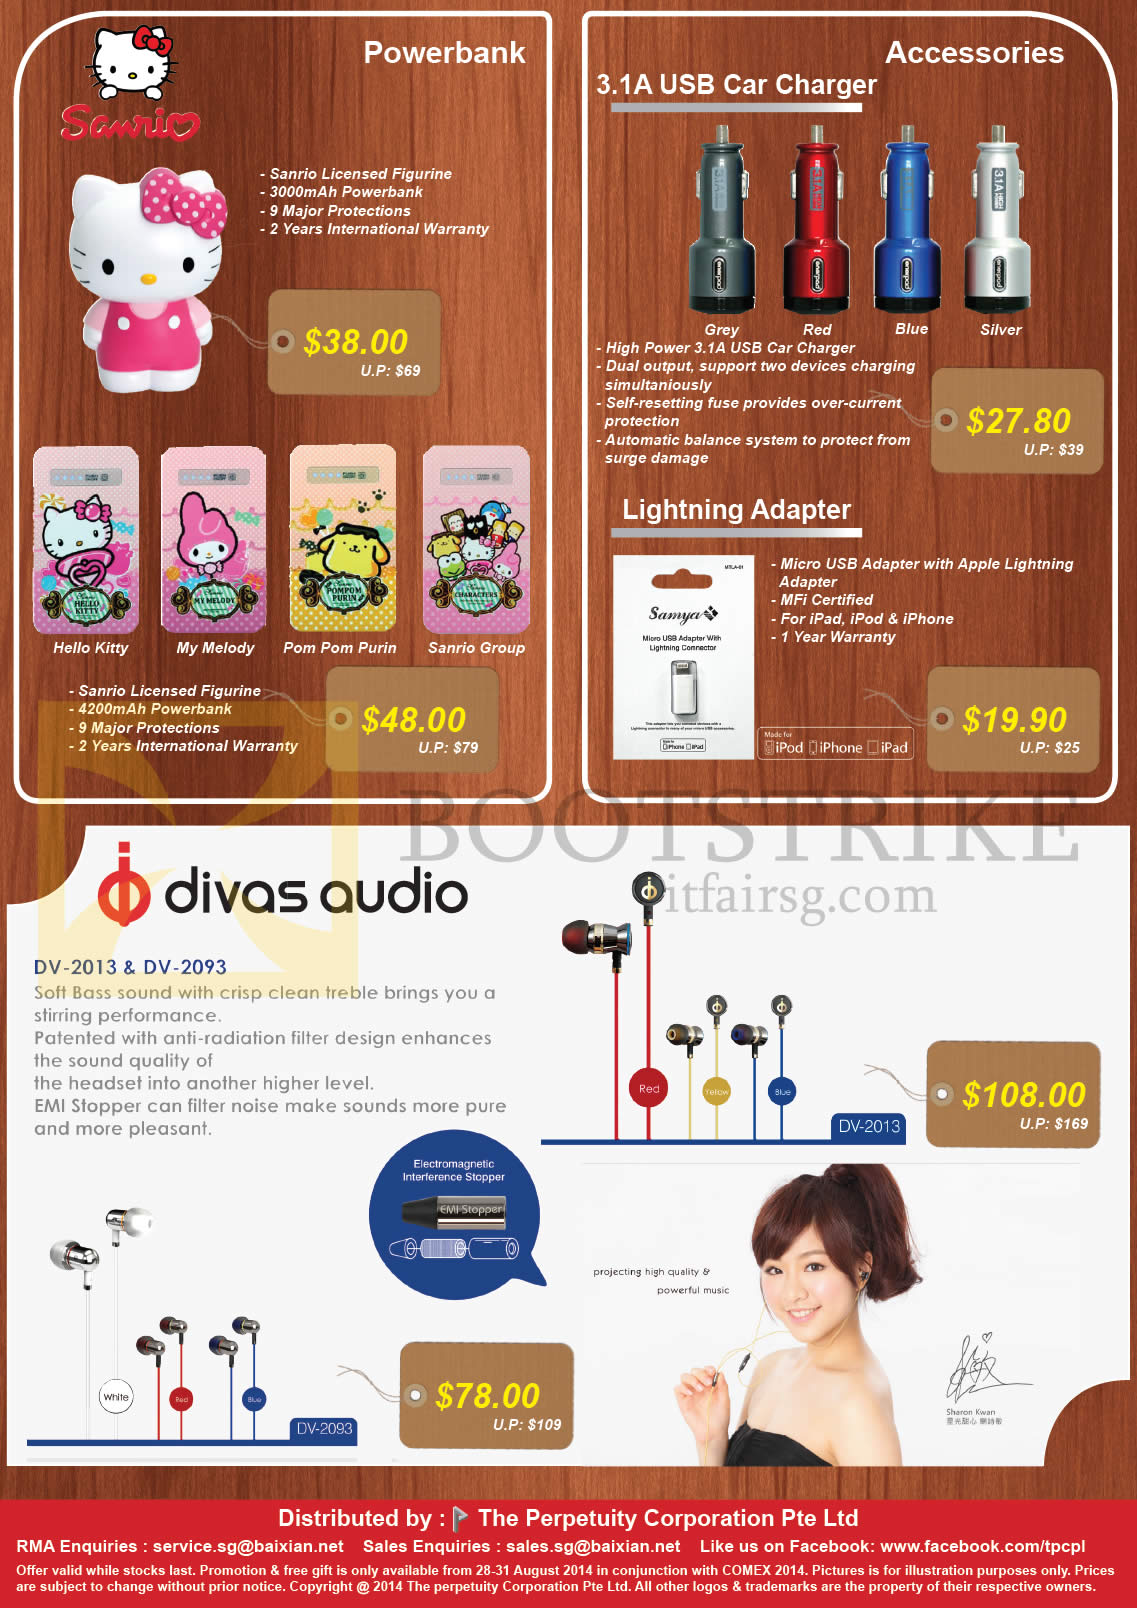 COMEX 2014 price list image brochure of The Perpetuity Sanrio Power Banks, USB Car Charger, Lightning Adapter, Divas Audio Earphone DV-2013 2093